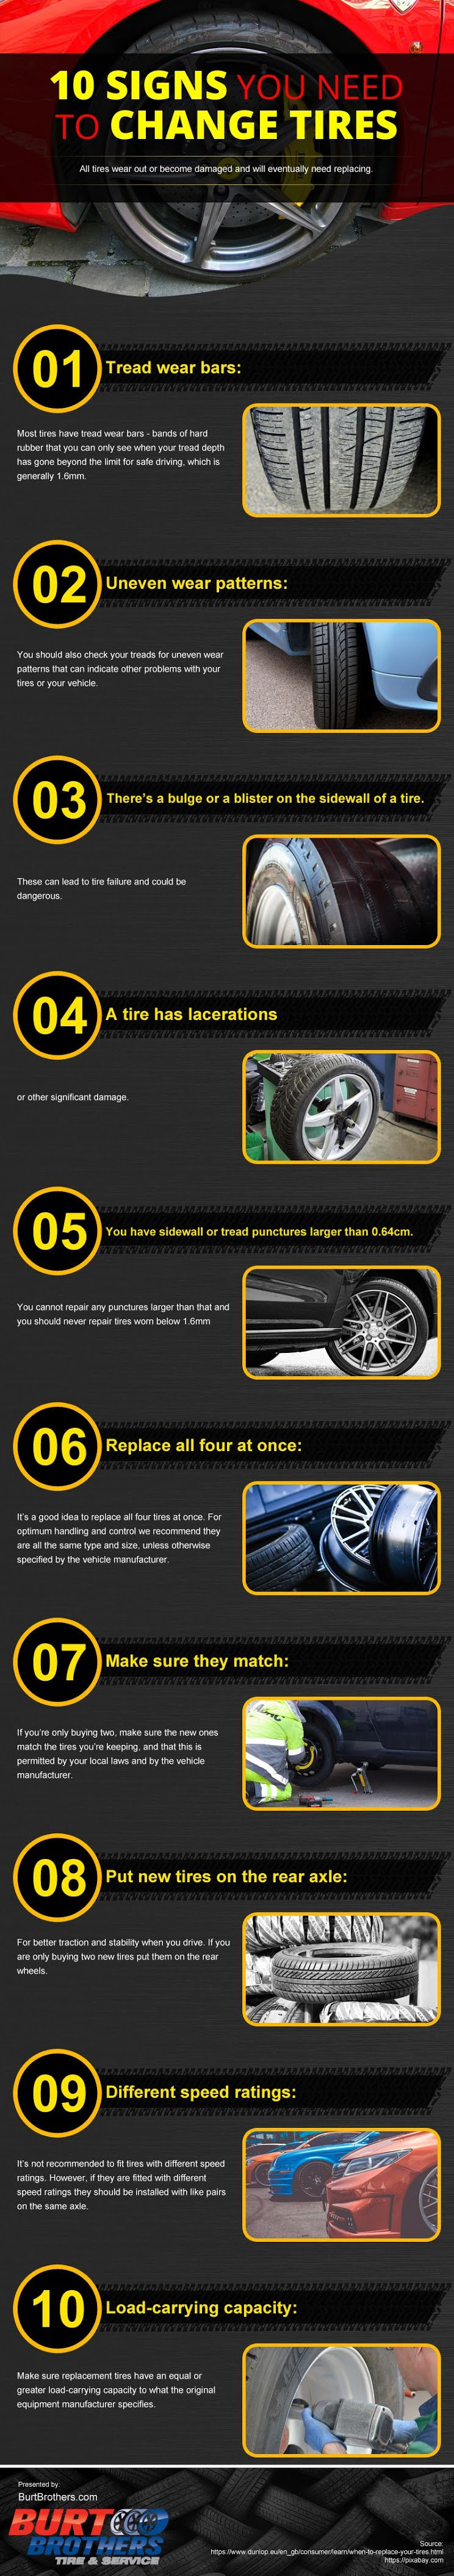 10 Signs You Need to Change Tires #infographic